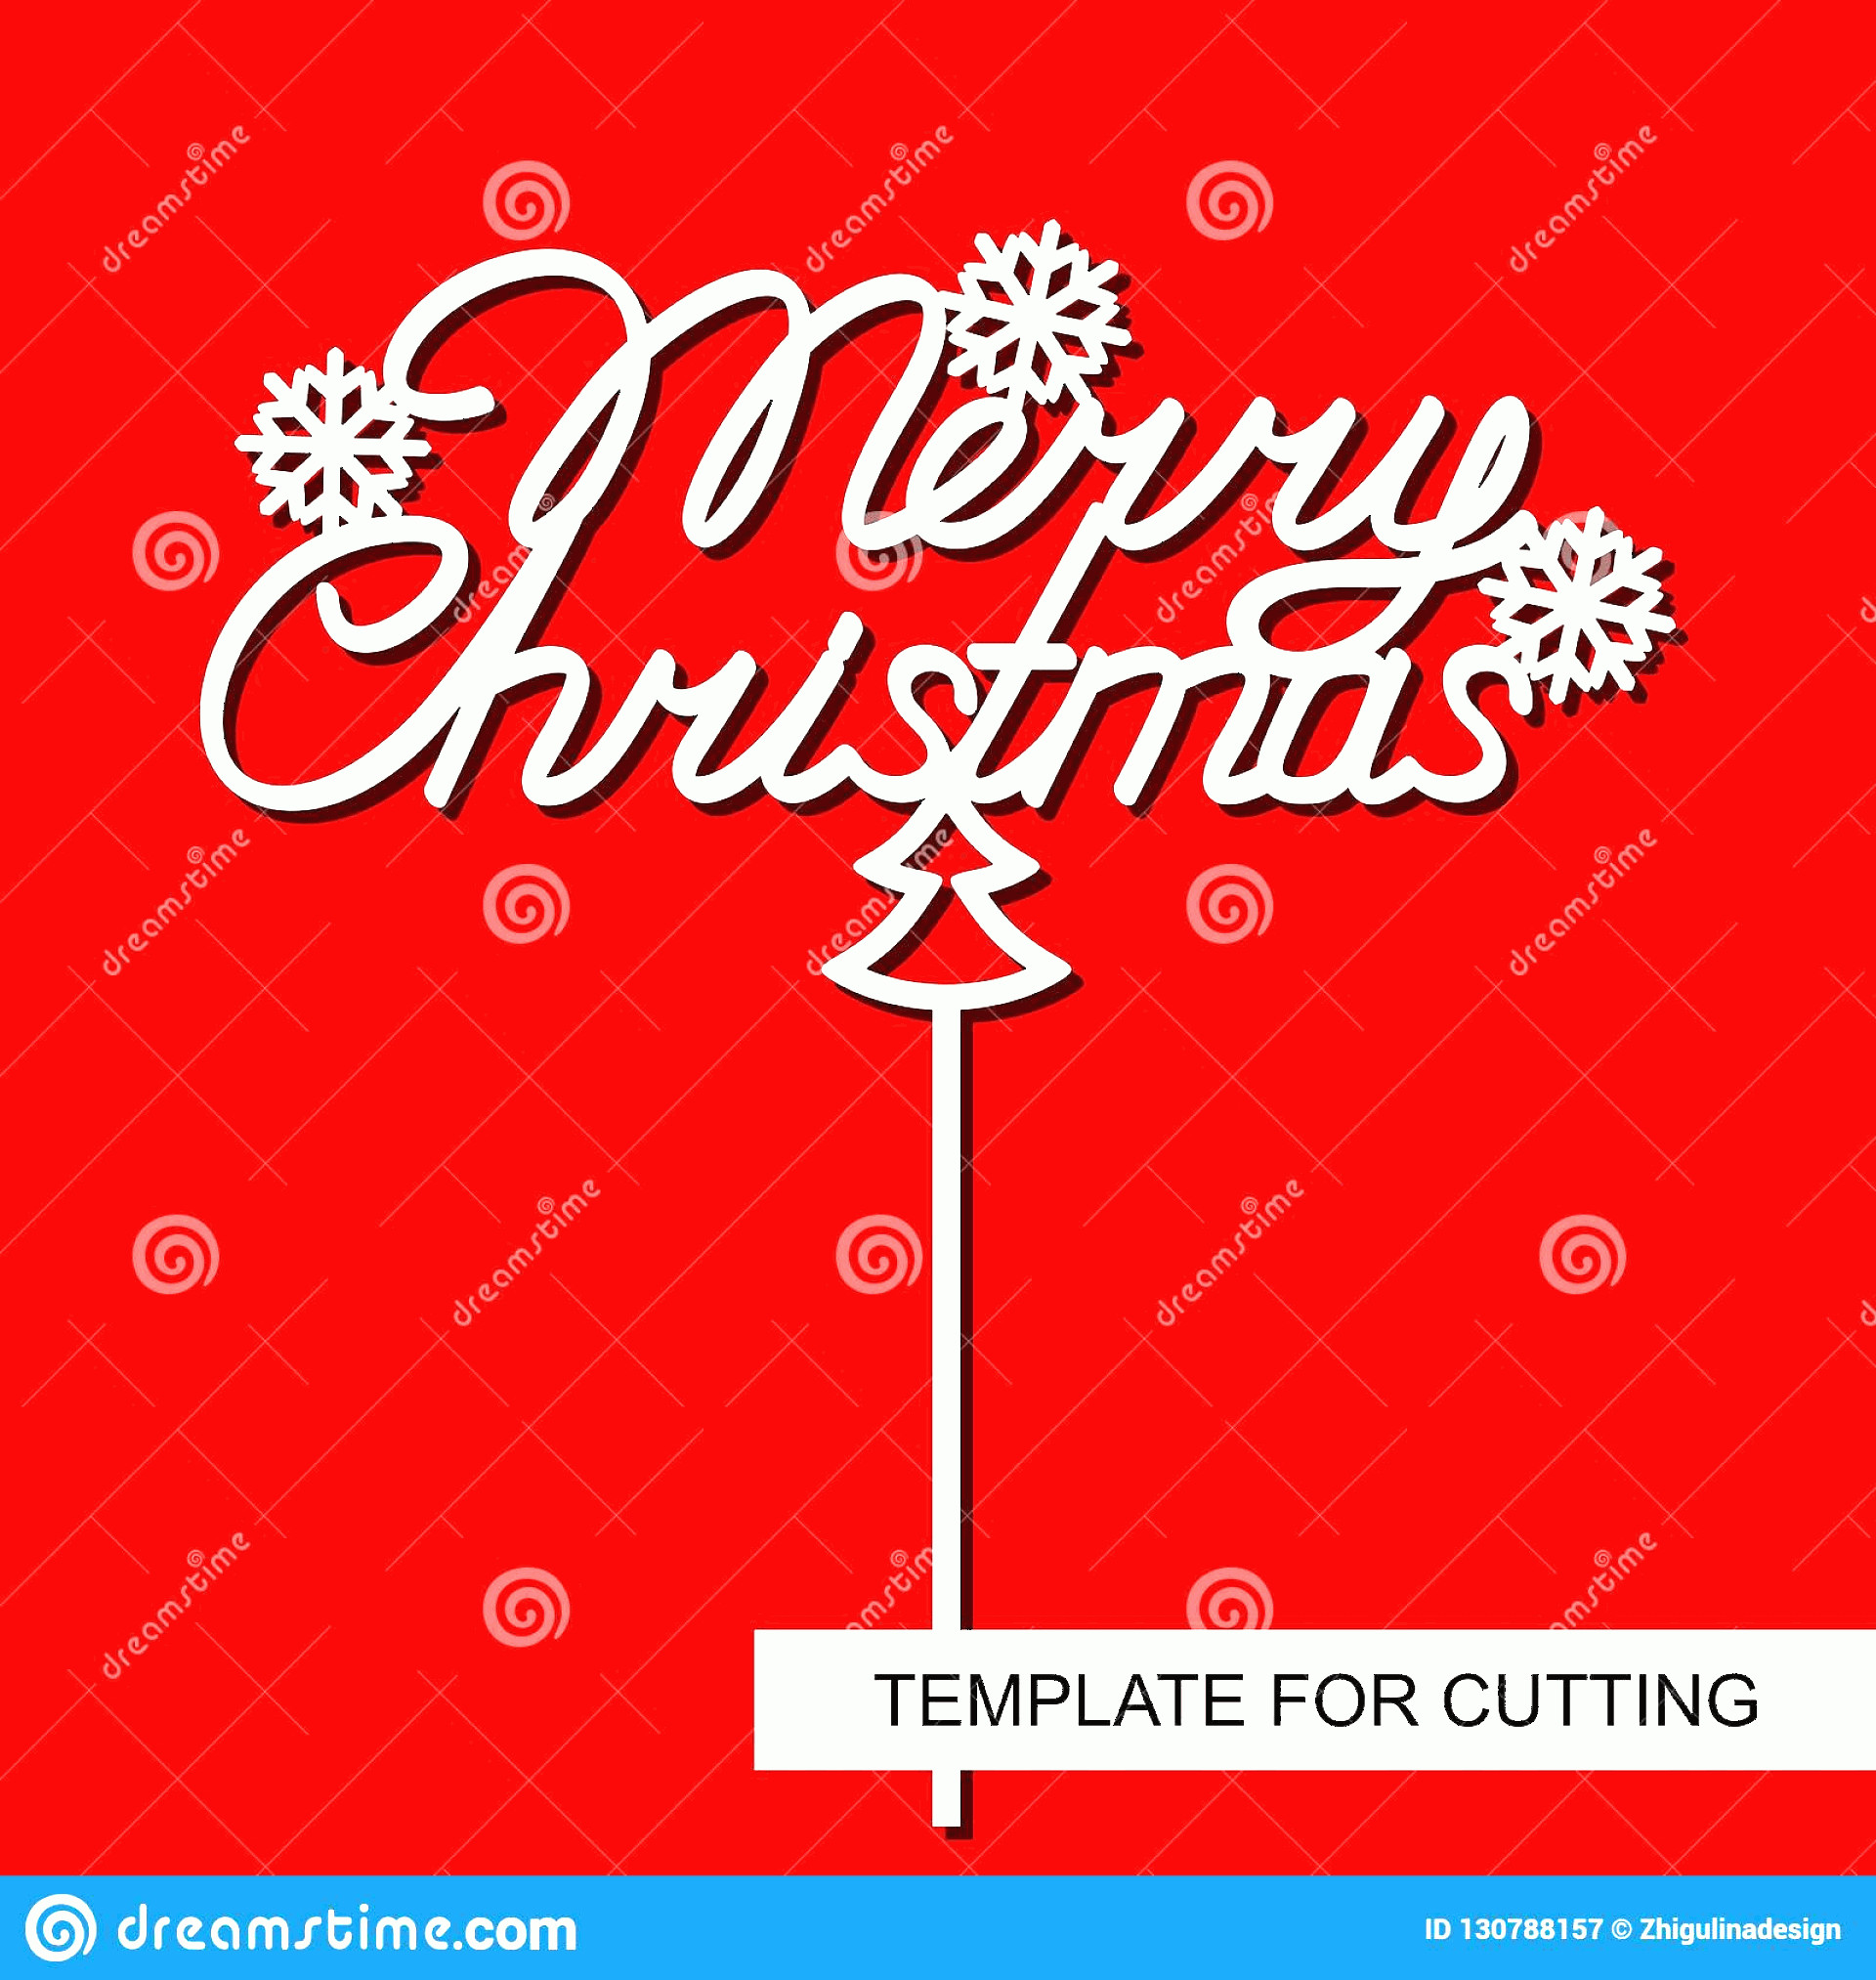 Vector Christmas Toppers: Template Laser Cutting Wood Carving Paper Cut Printing Vector Illustration Topper Cake Merry Christmas Snowflakes Image